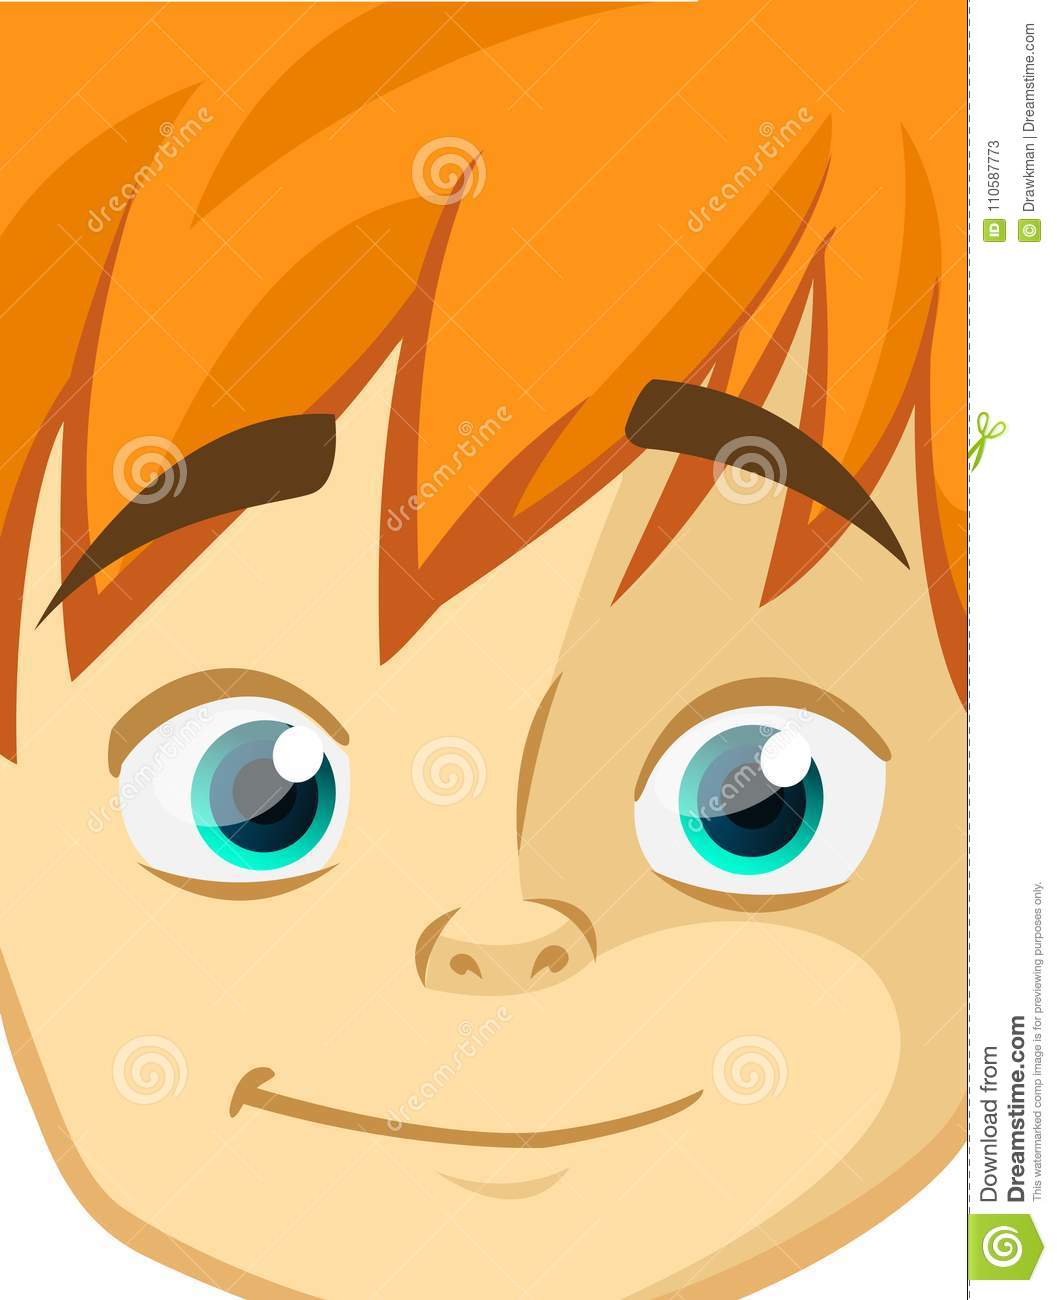 Happy Cartoon Boy Face. Vector Illustration Of A Little Kid Face.